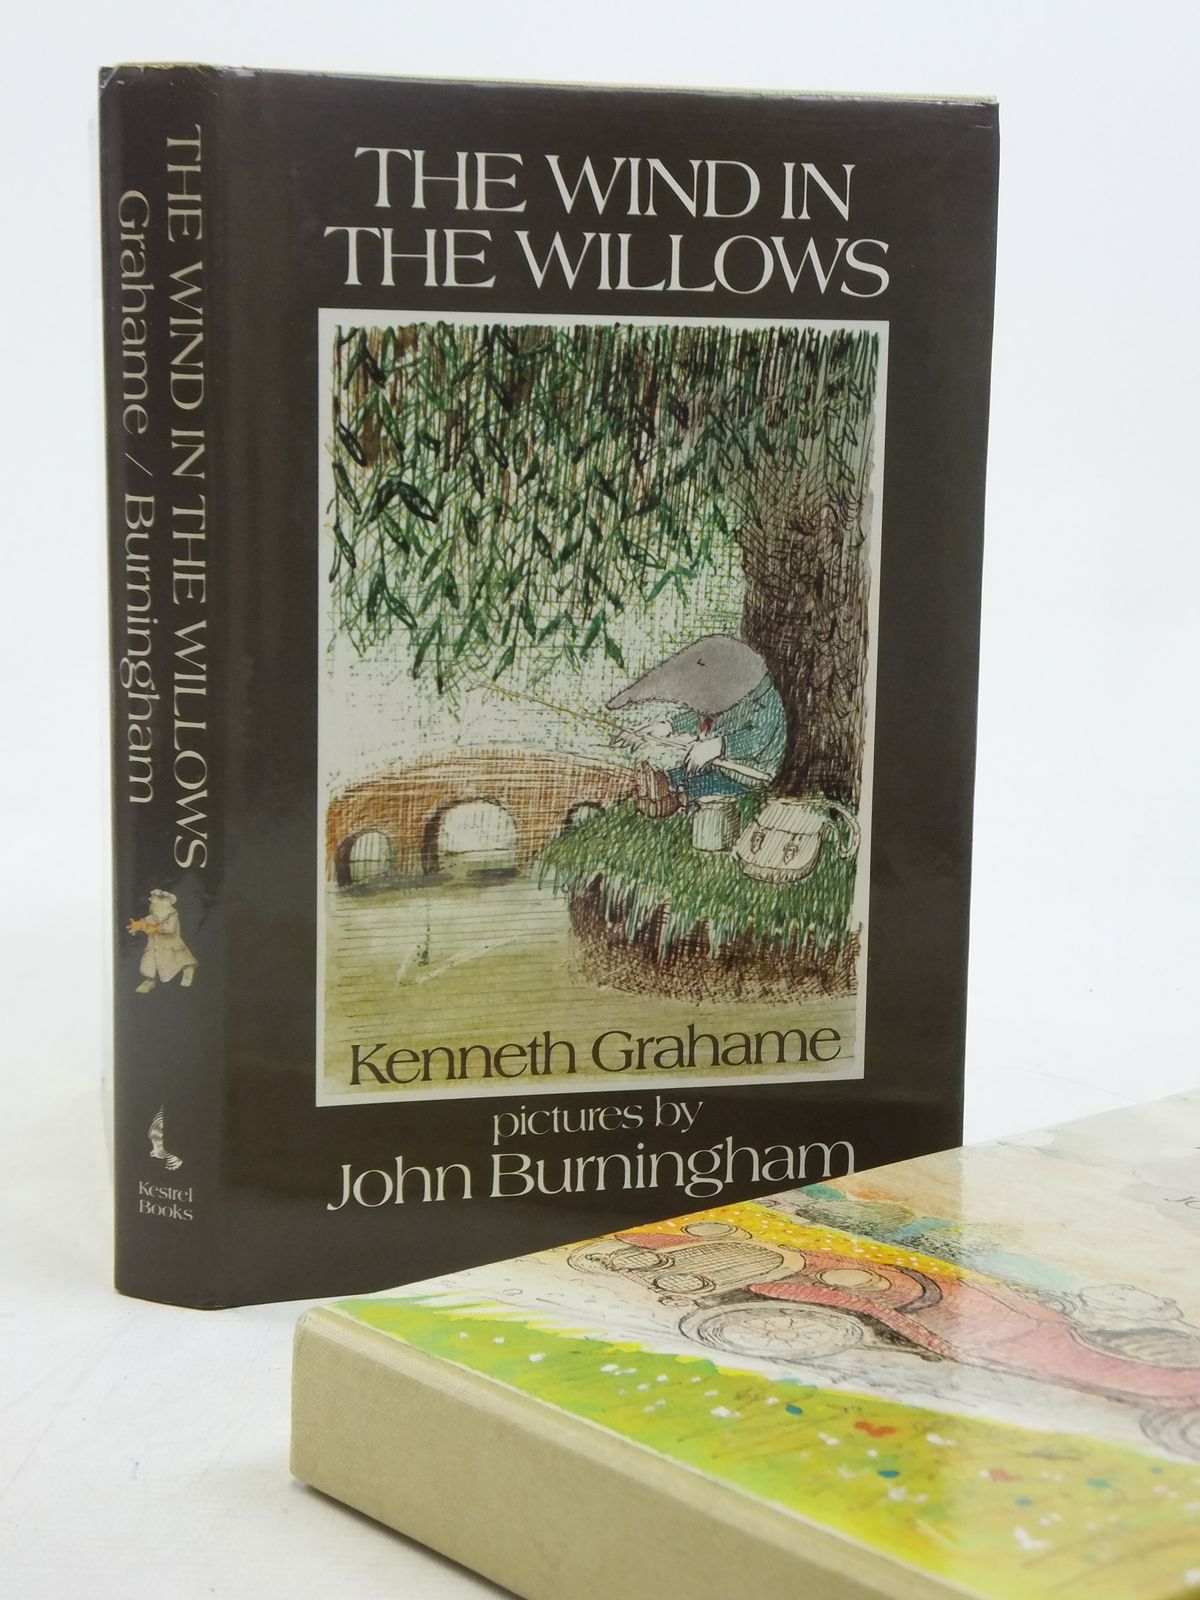 Photo of THE WIND IN THE WILLOWS written by Grahame, Kenneth illustrated by Burningham, John published by Kestrel Books (STOCK CODE: 2116575)  for sale by Stella & Rose's Books